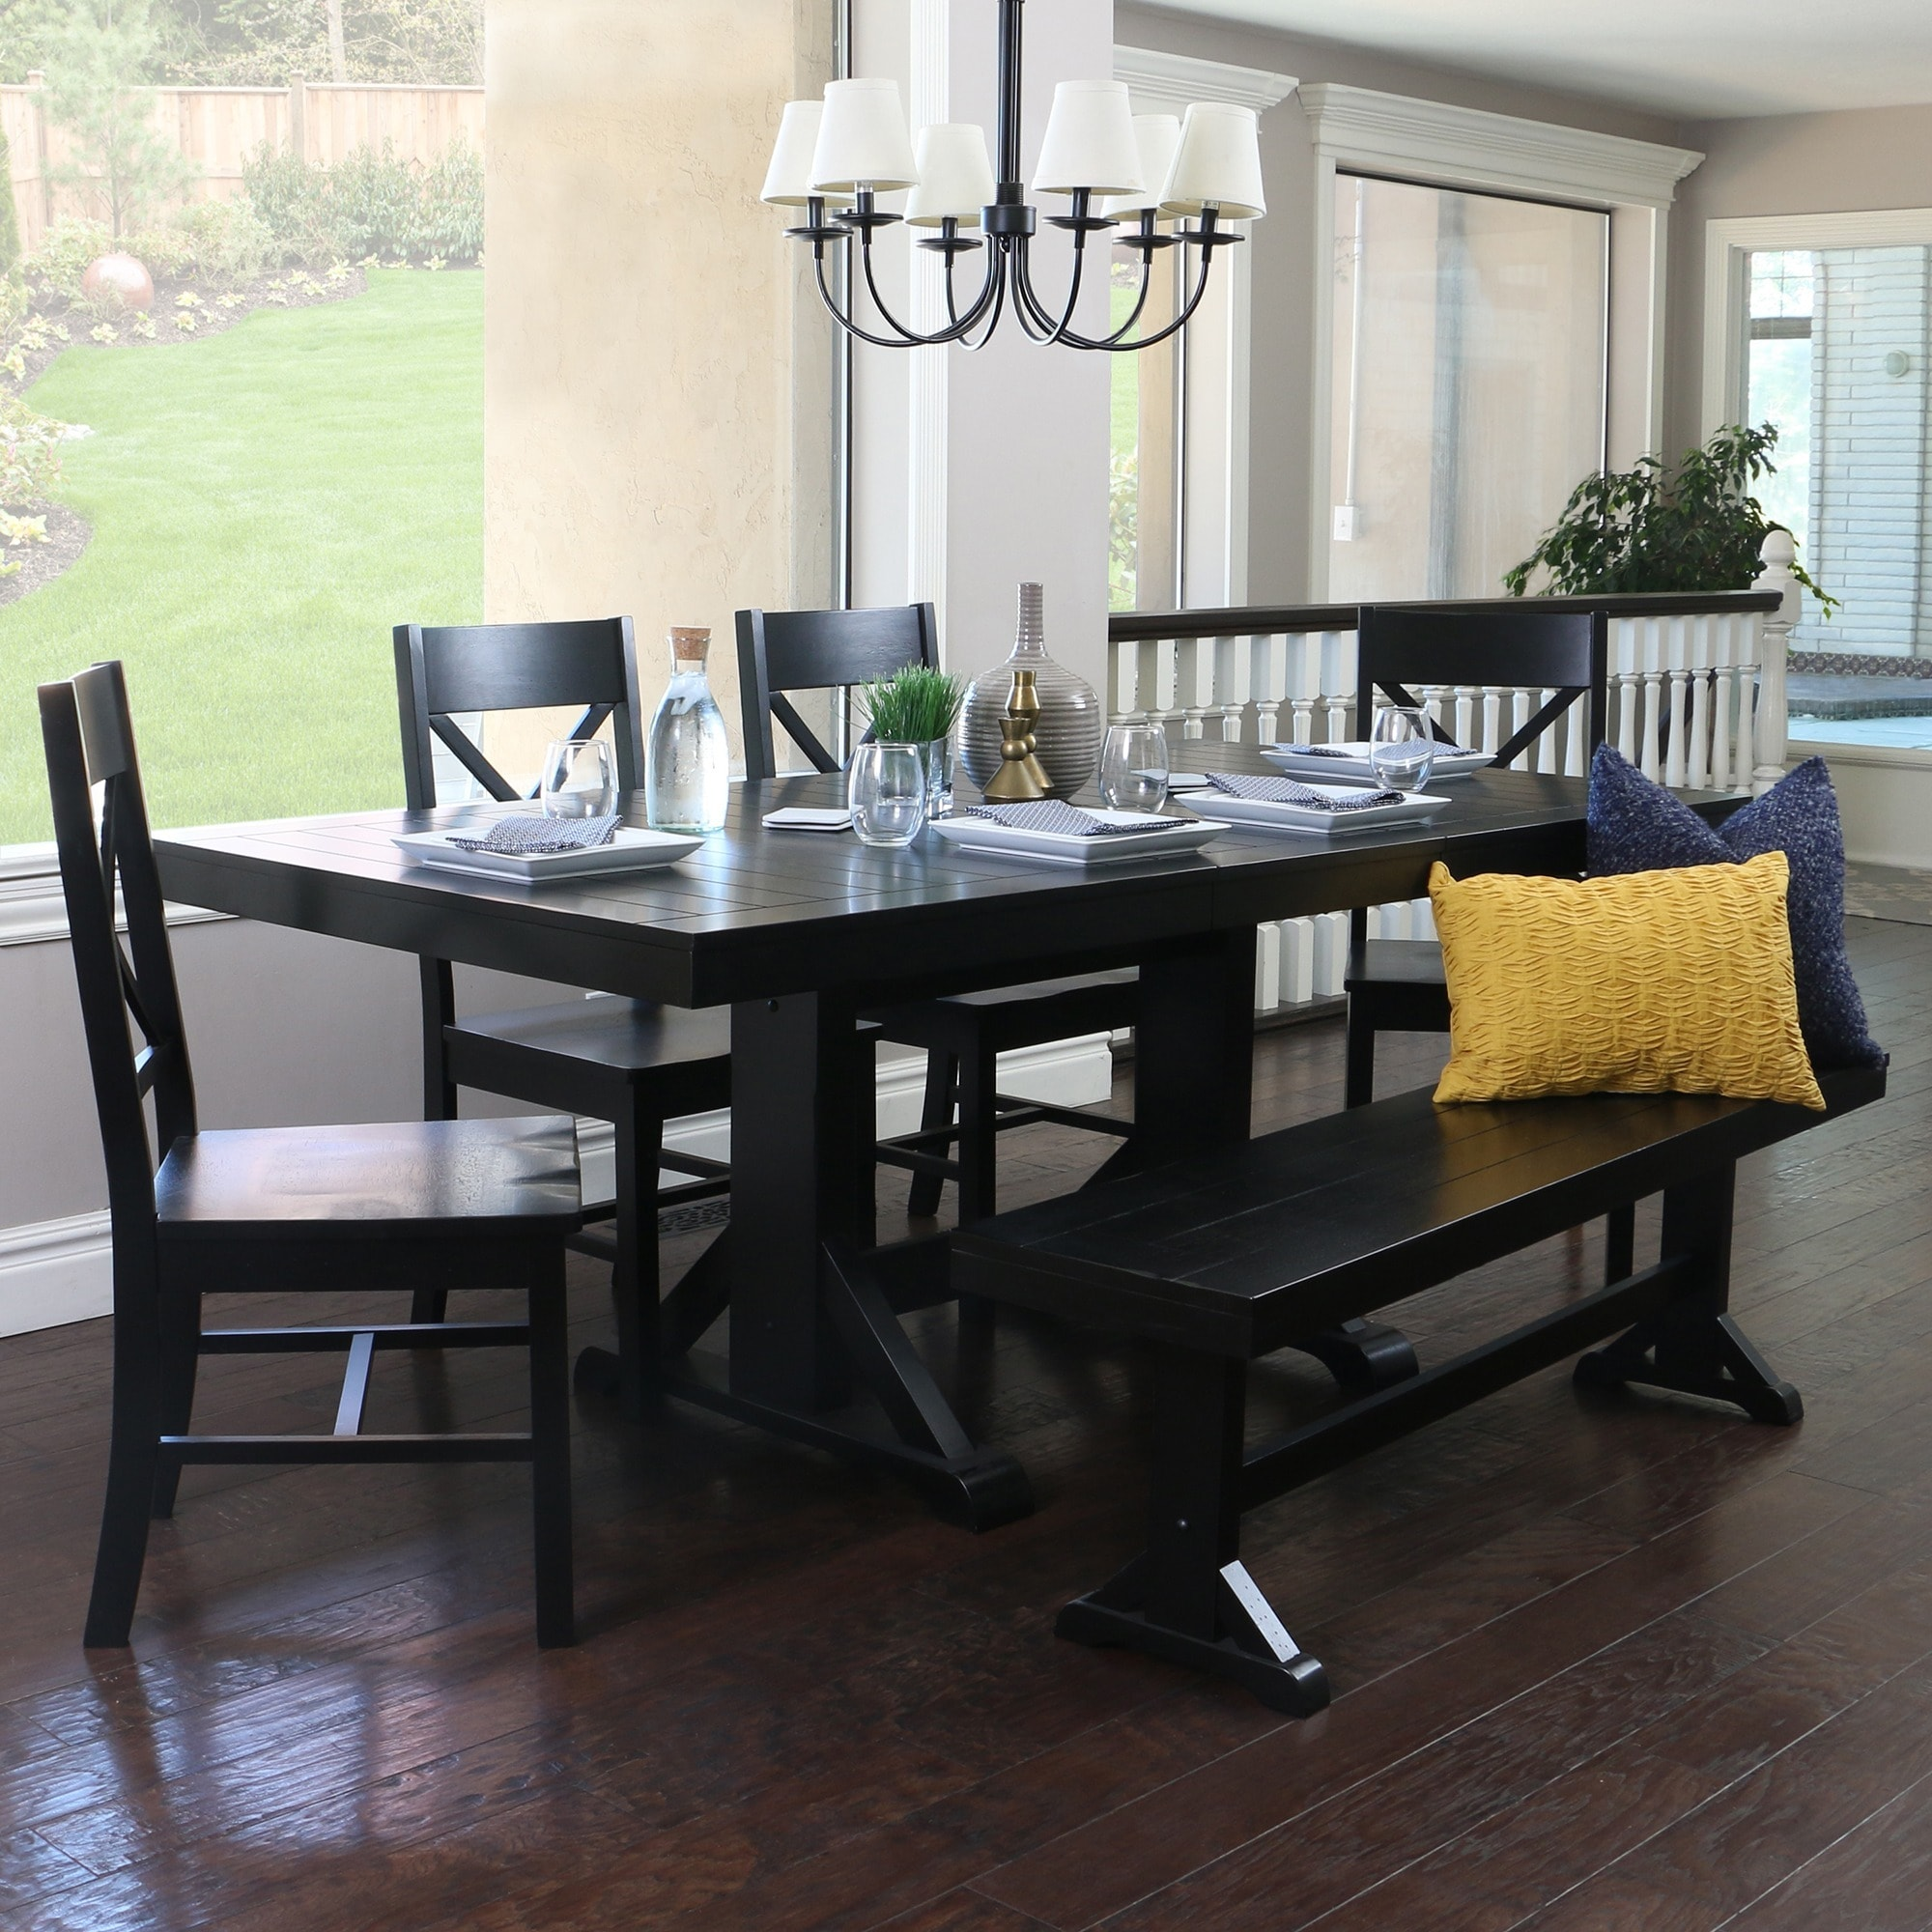 Countryside Chic 6 Piece Antique Black Wood Dining Set   Free Shipping  Today   Overstock   16241100